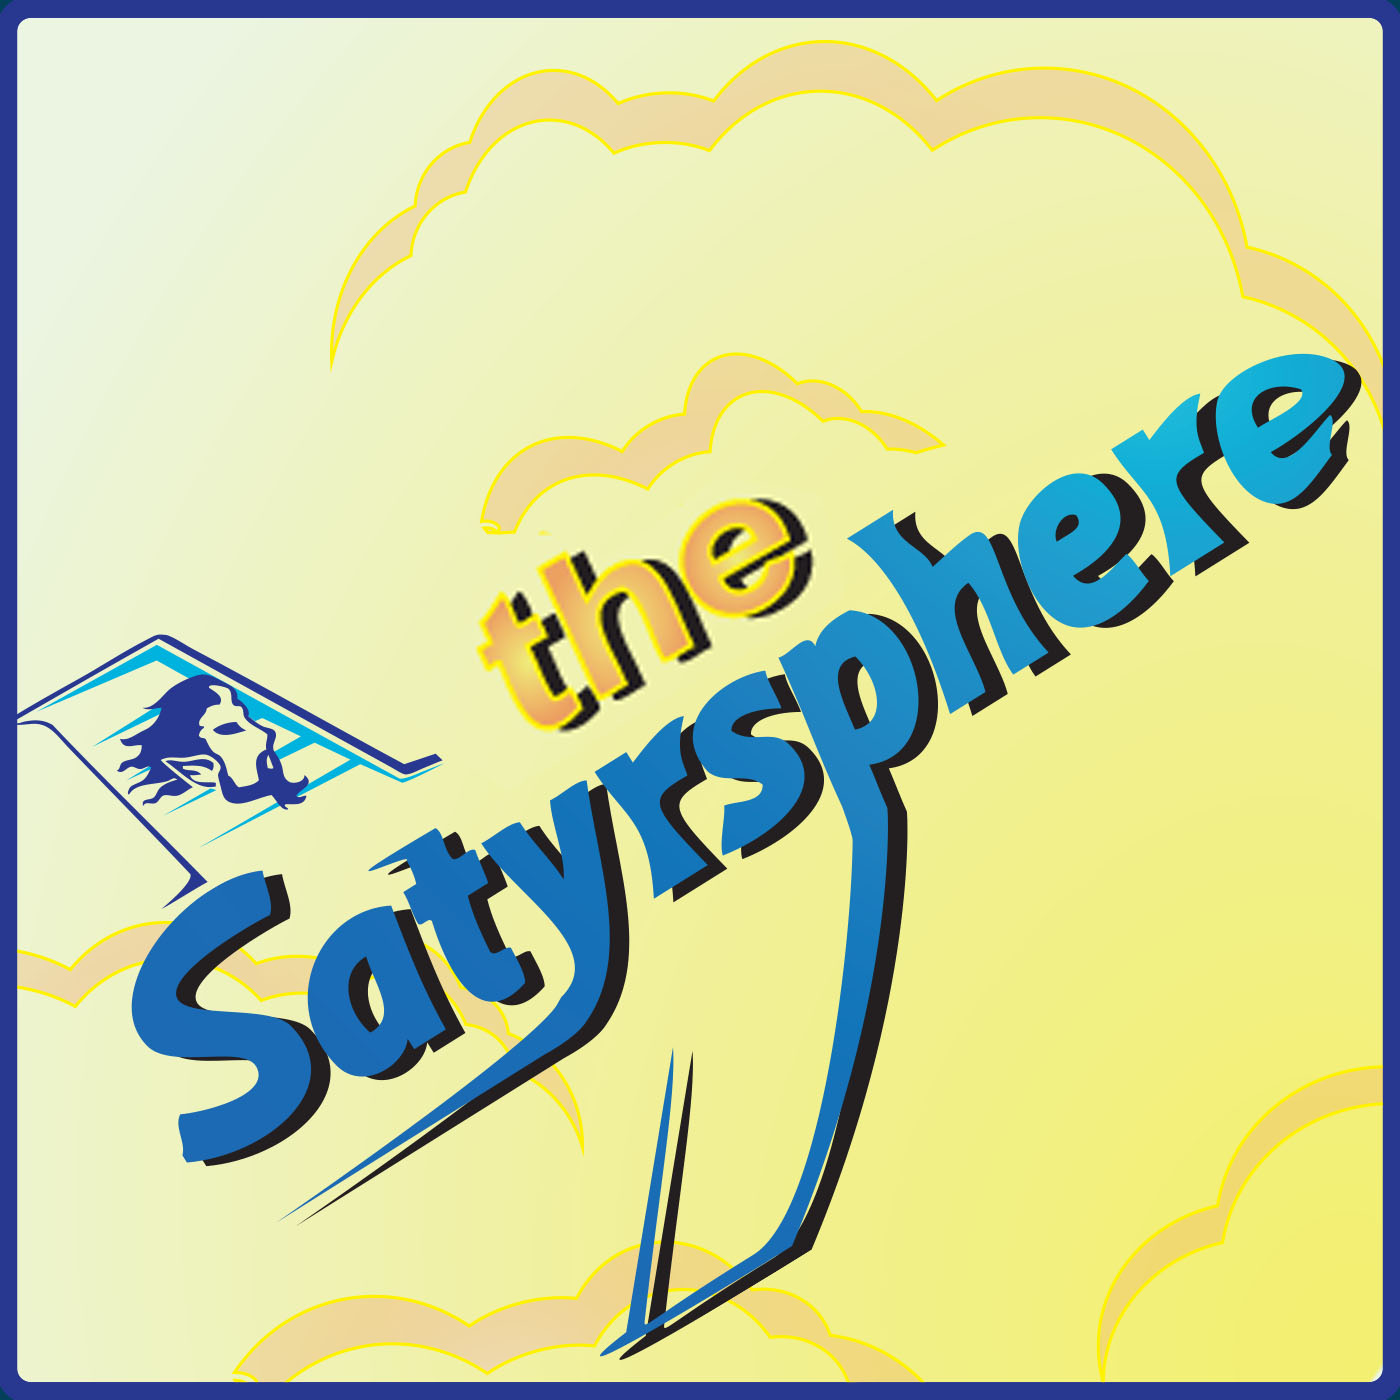 #197 - Return of The Satyrsphere